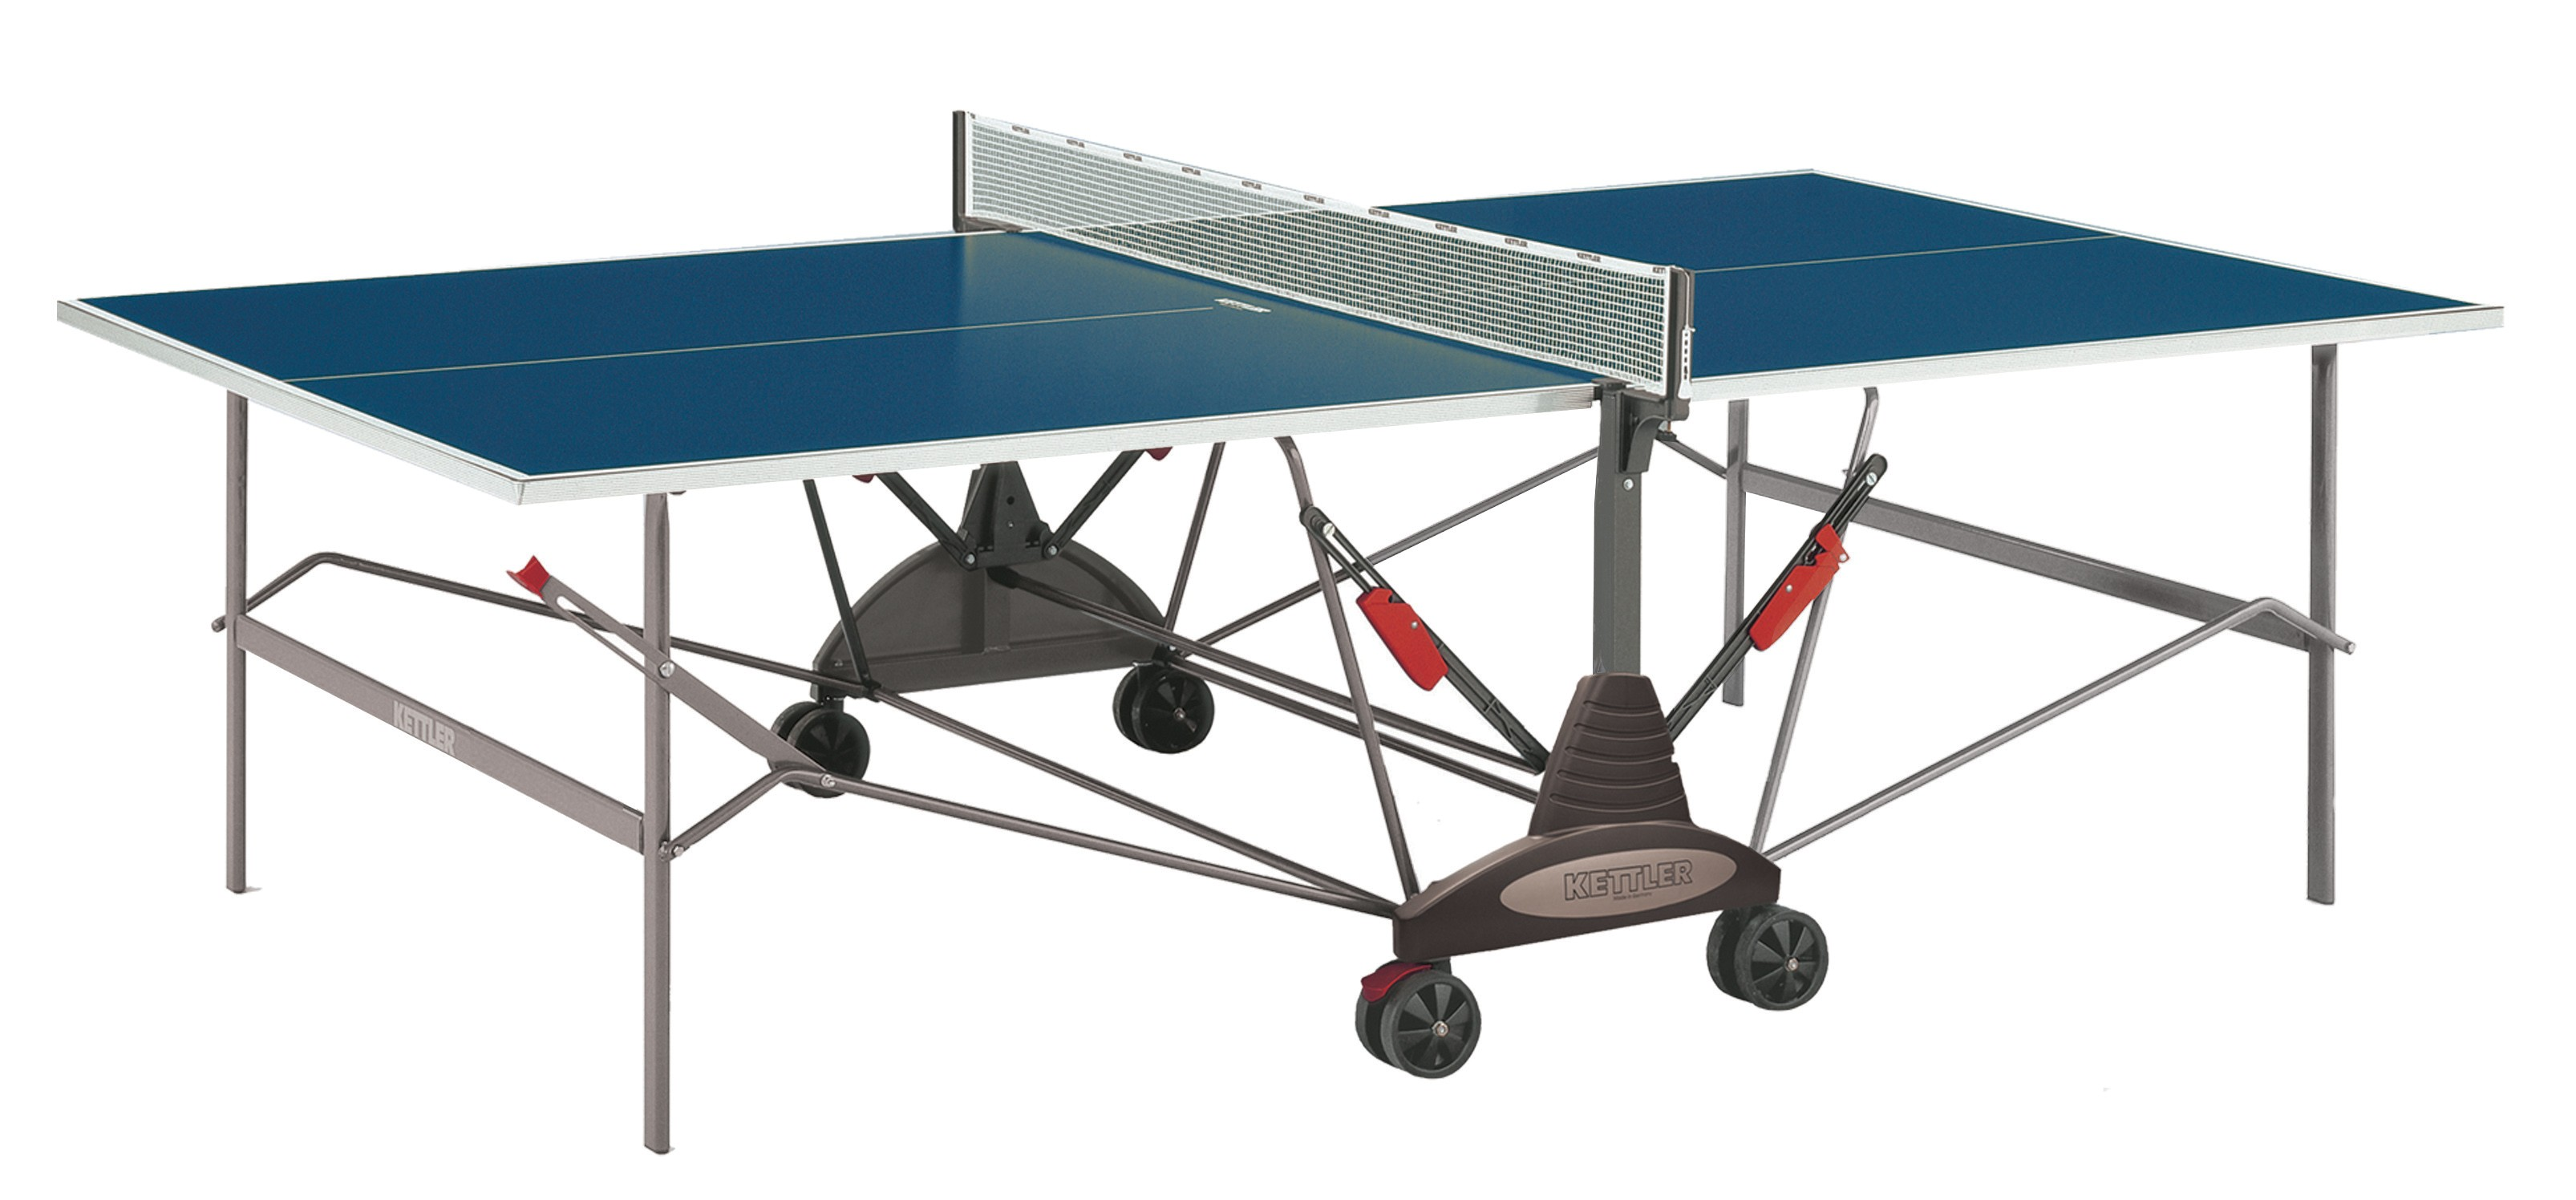 kettler stockholm outdoor table tennis table blue